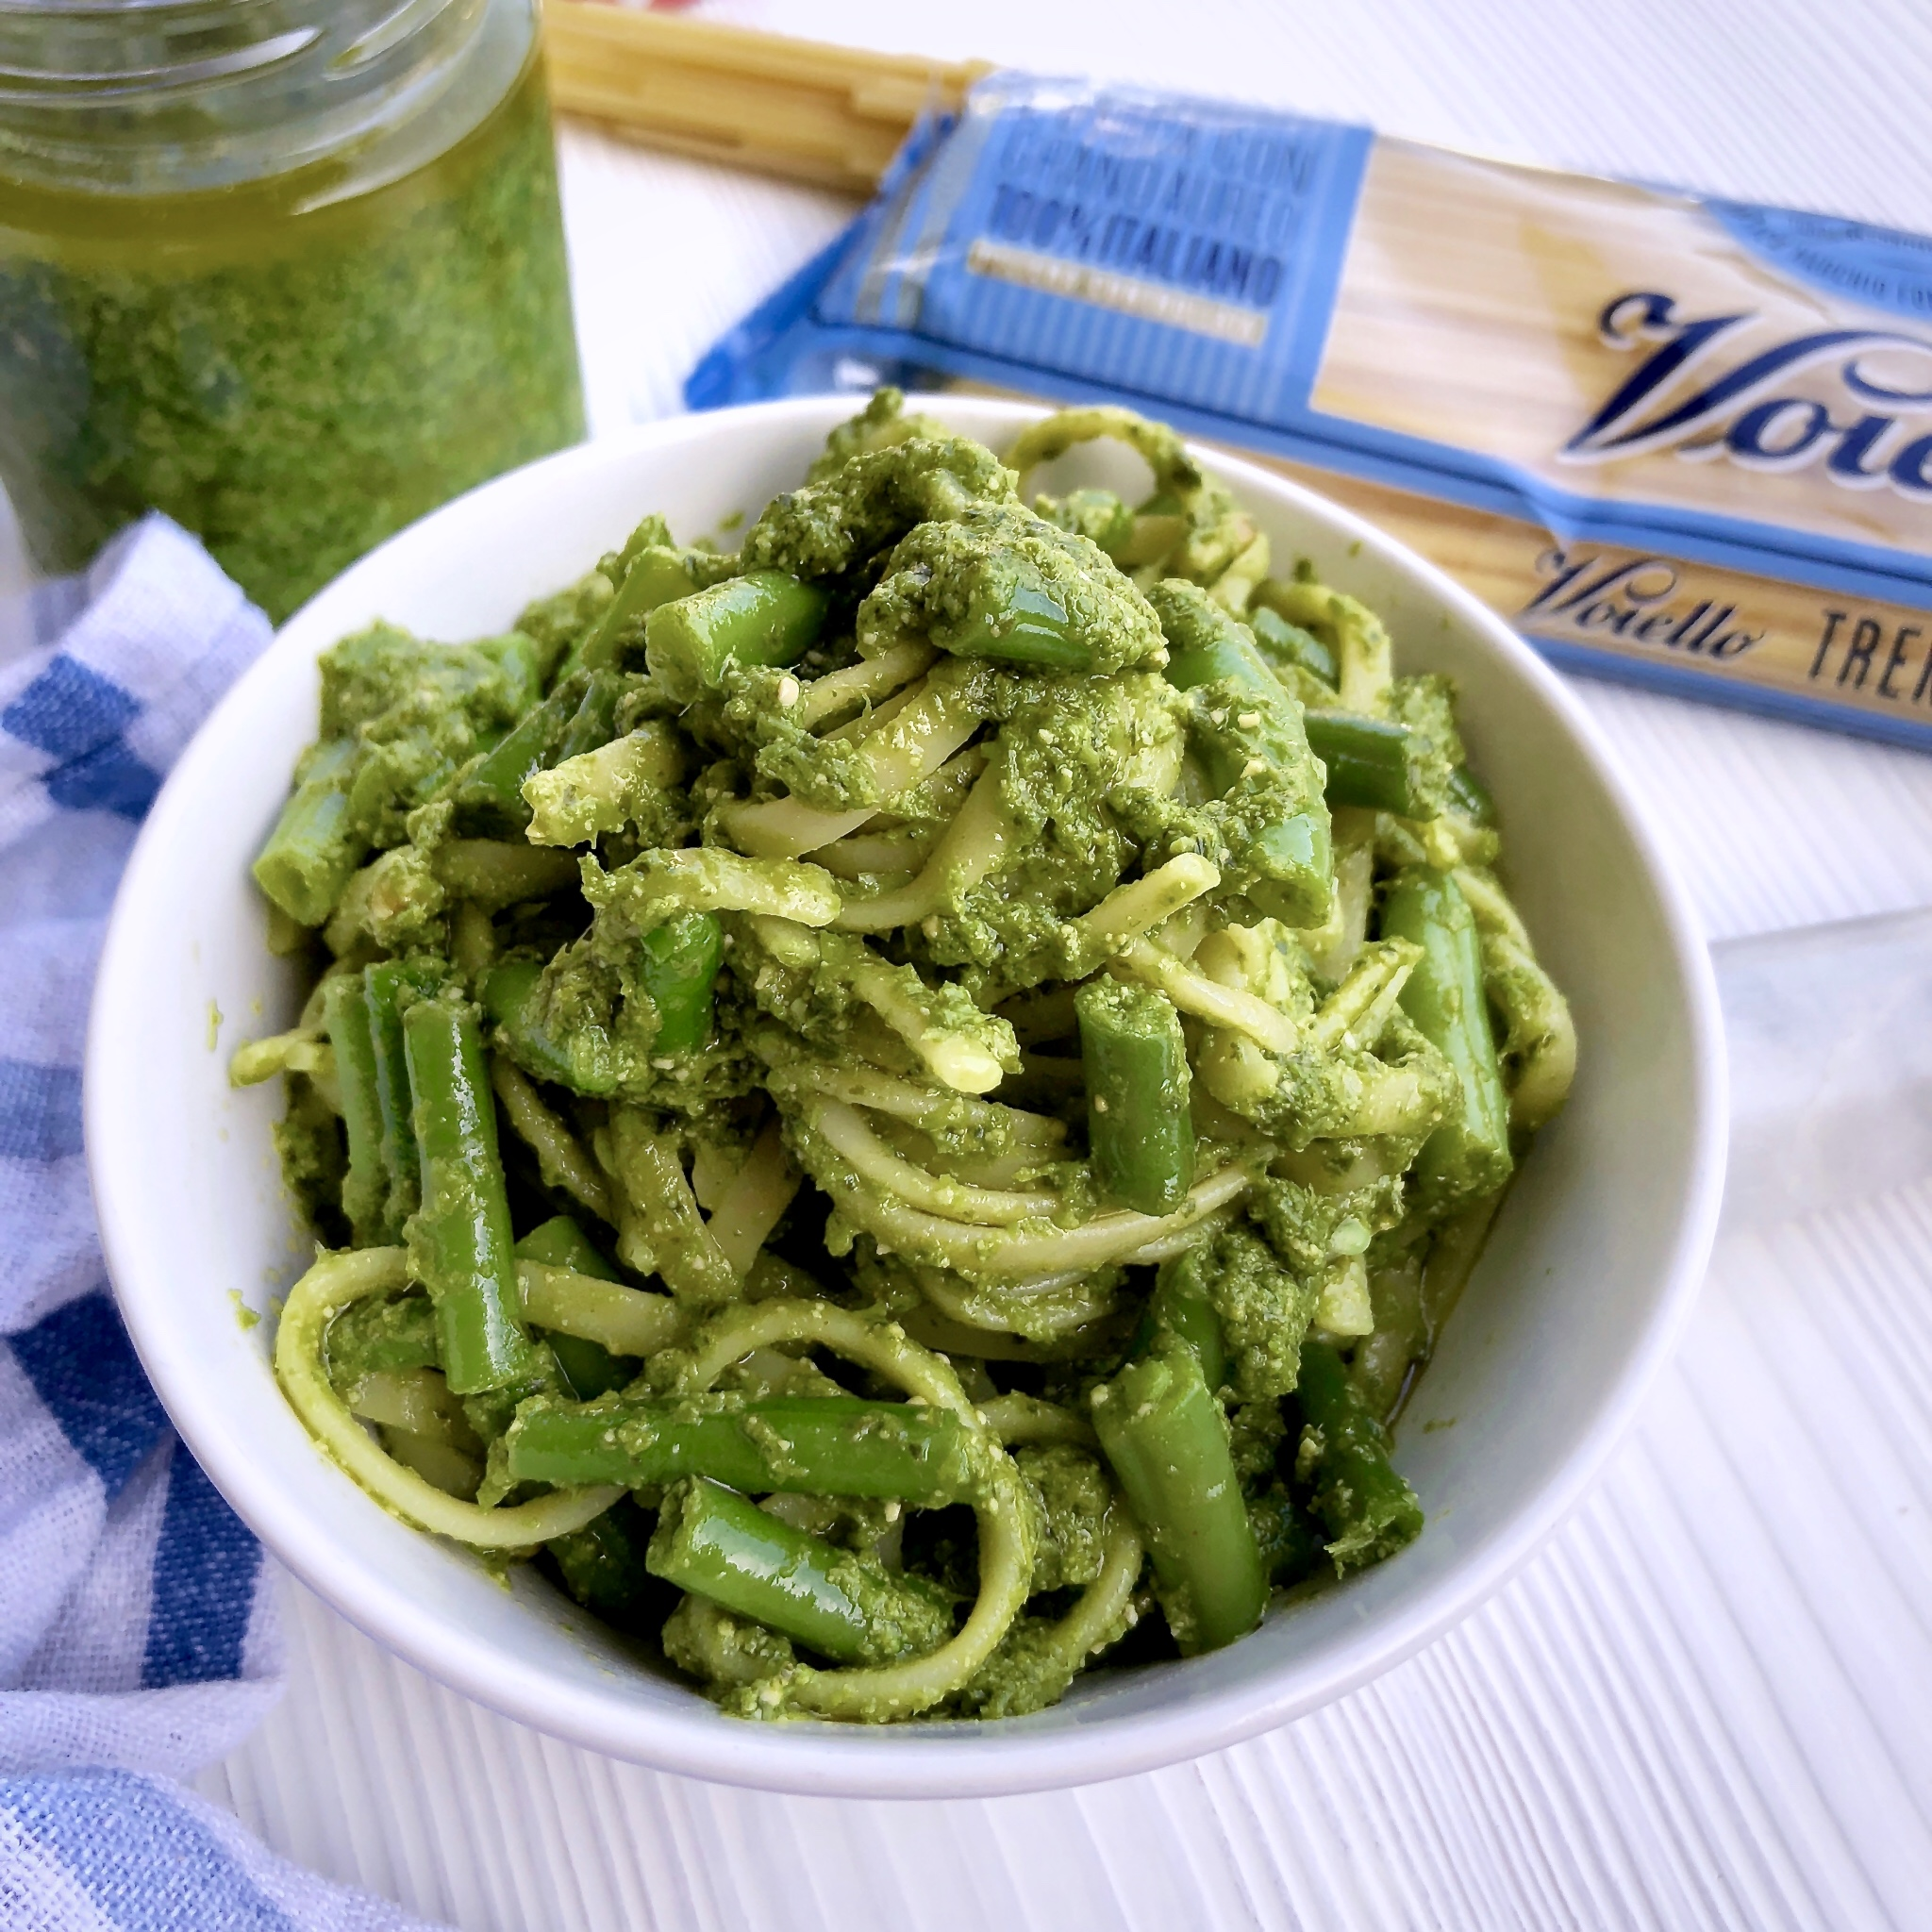 L'estate è tornata, e pure il pesto